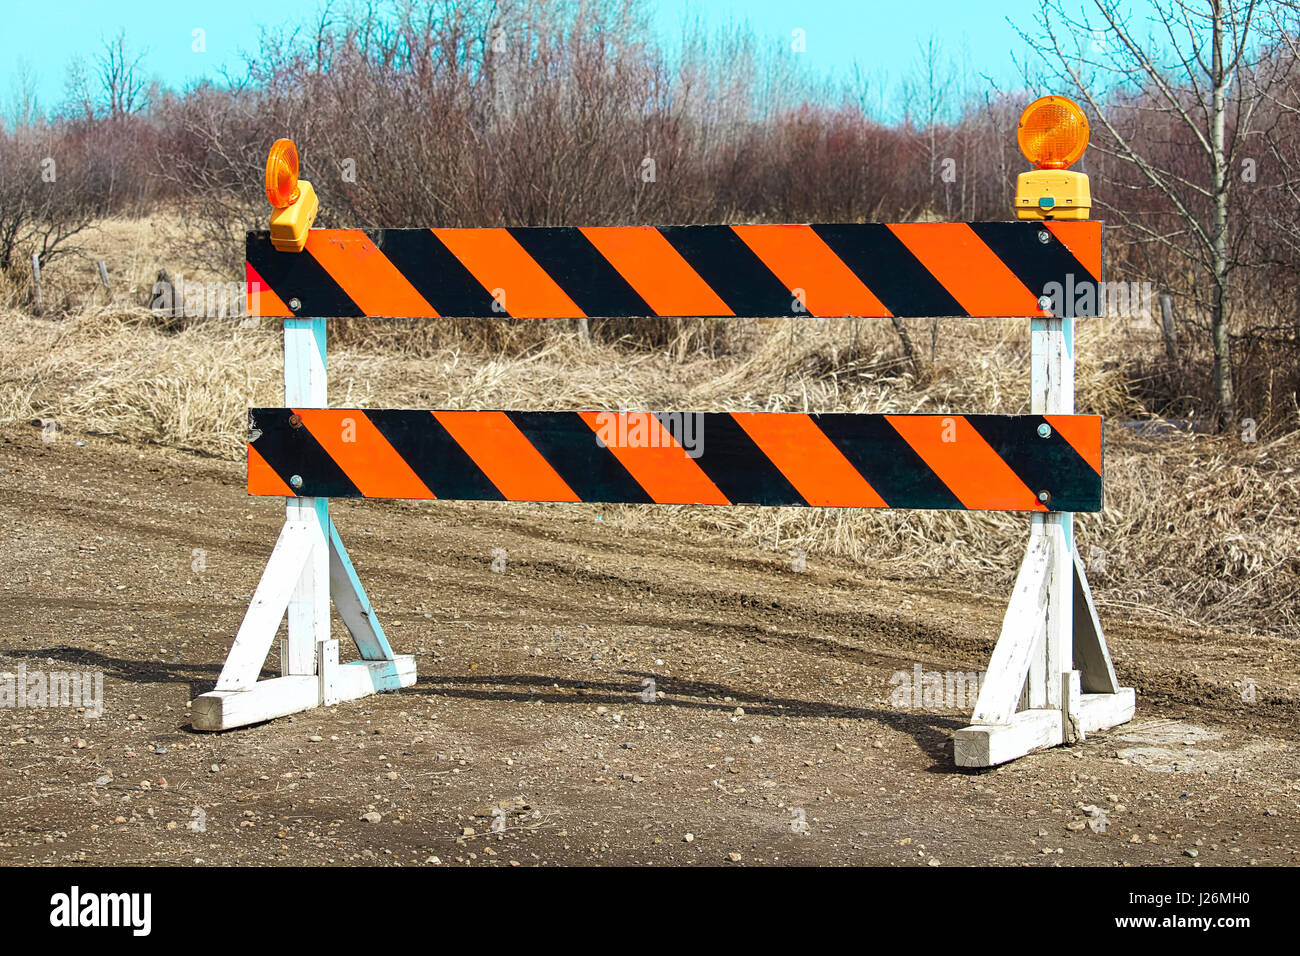 Construction barricade along a country road. - Stock Image